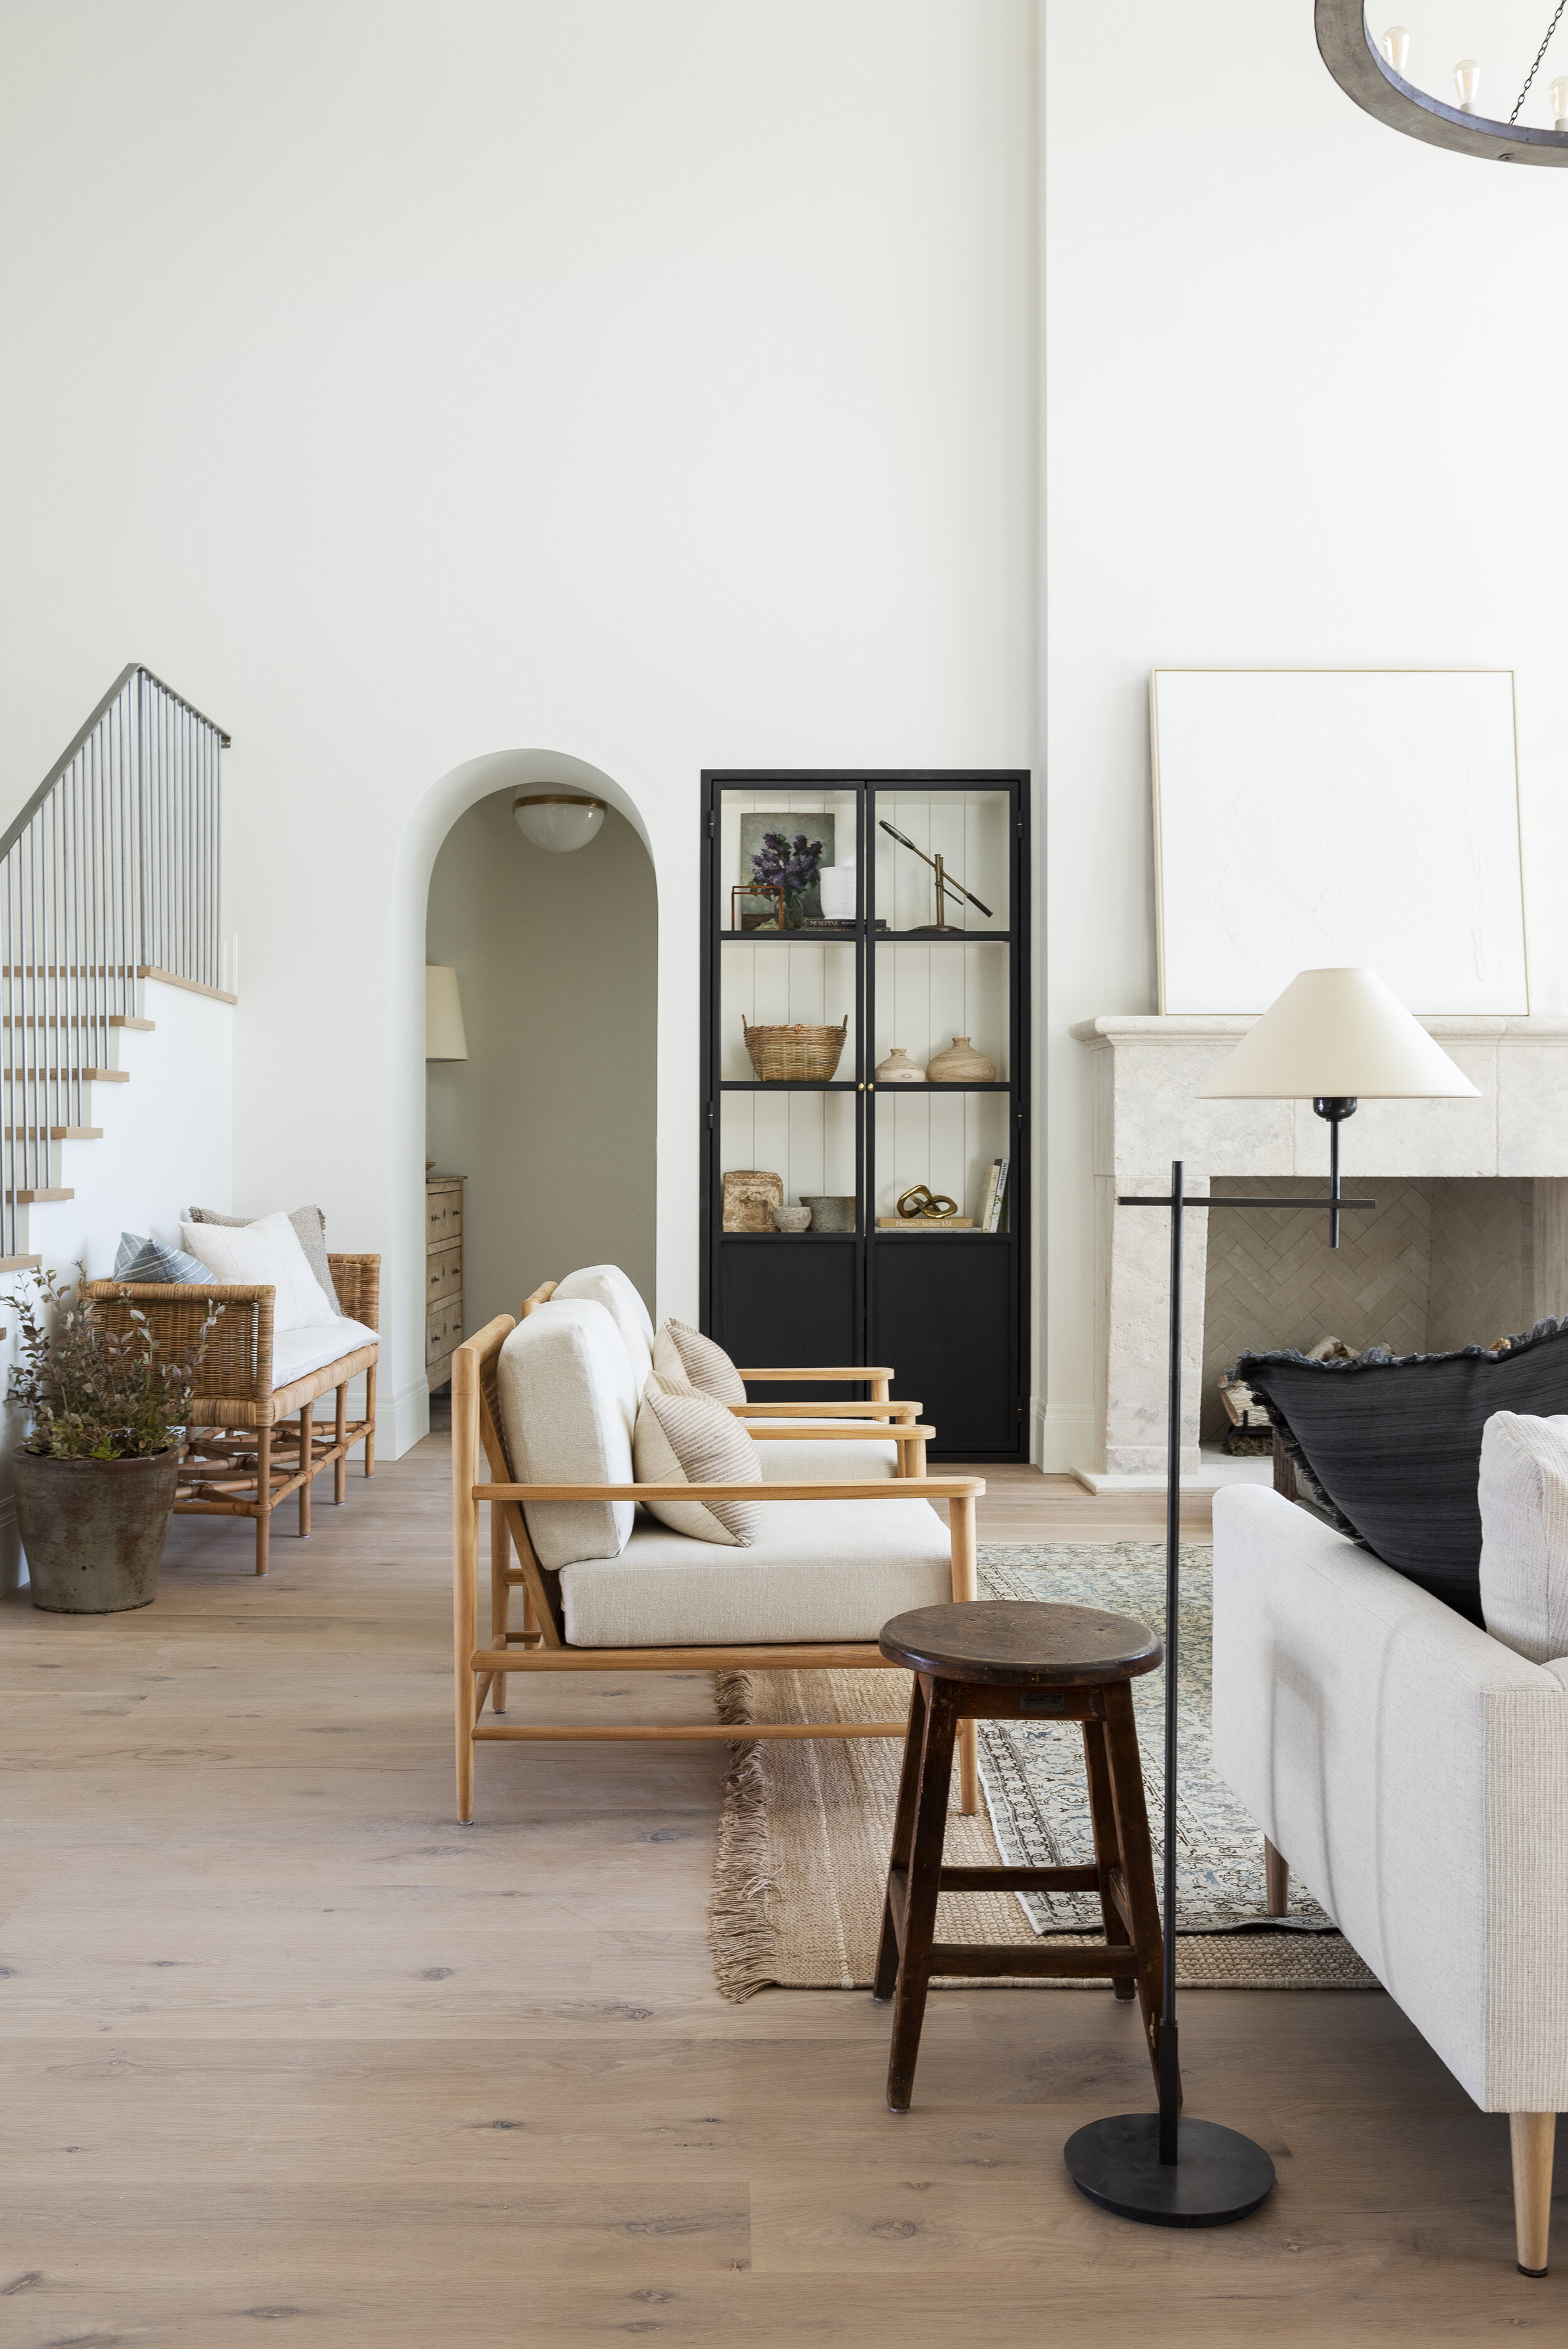 The Best White Paint Colors For Every Home,Single Story 2 Master Bedroom House Plans